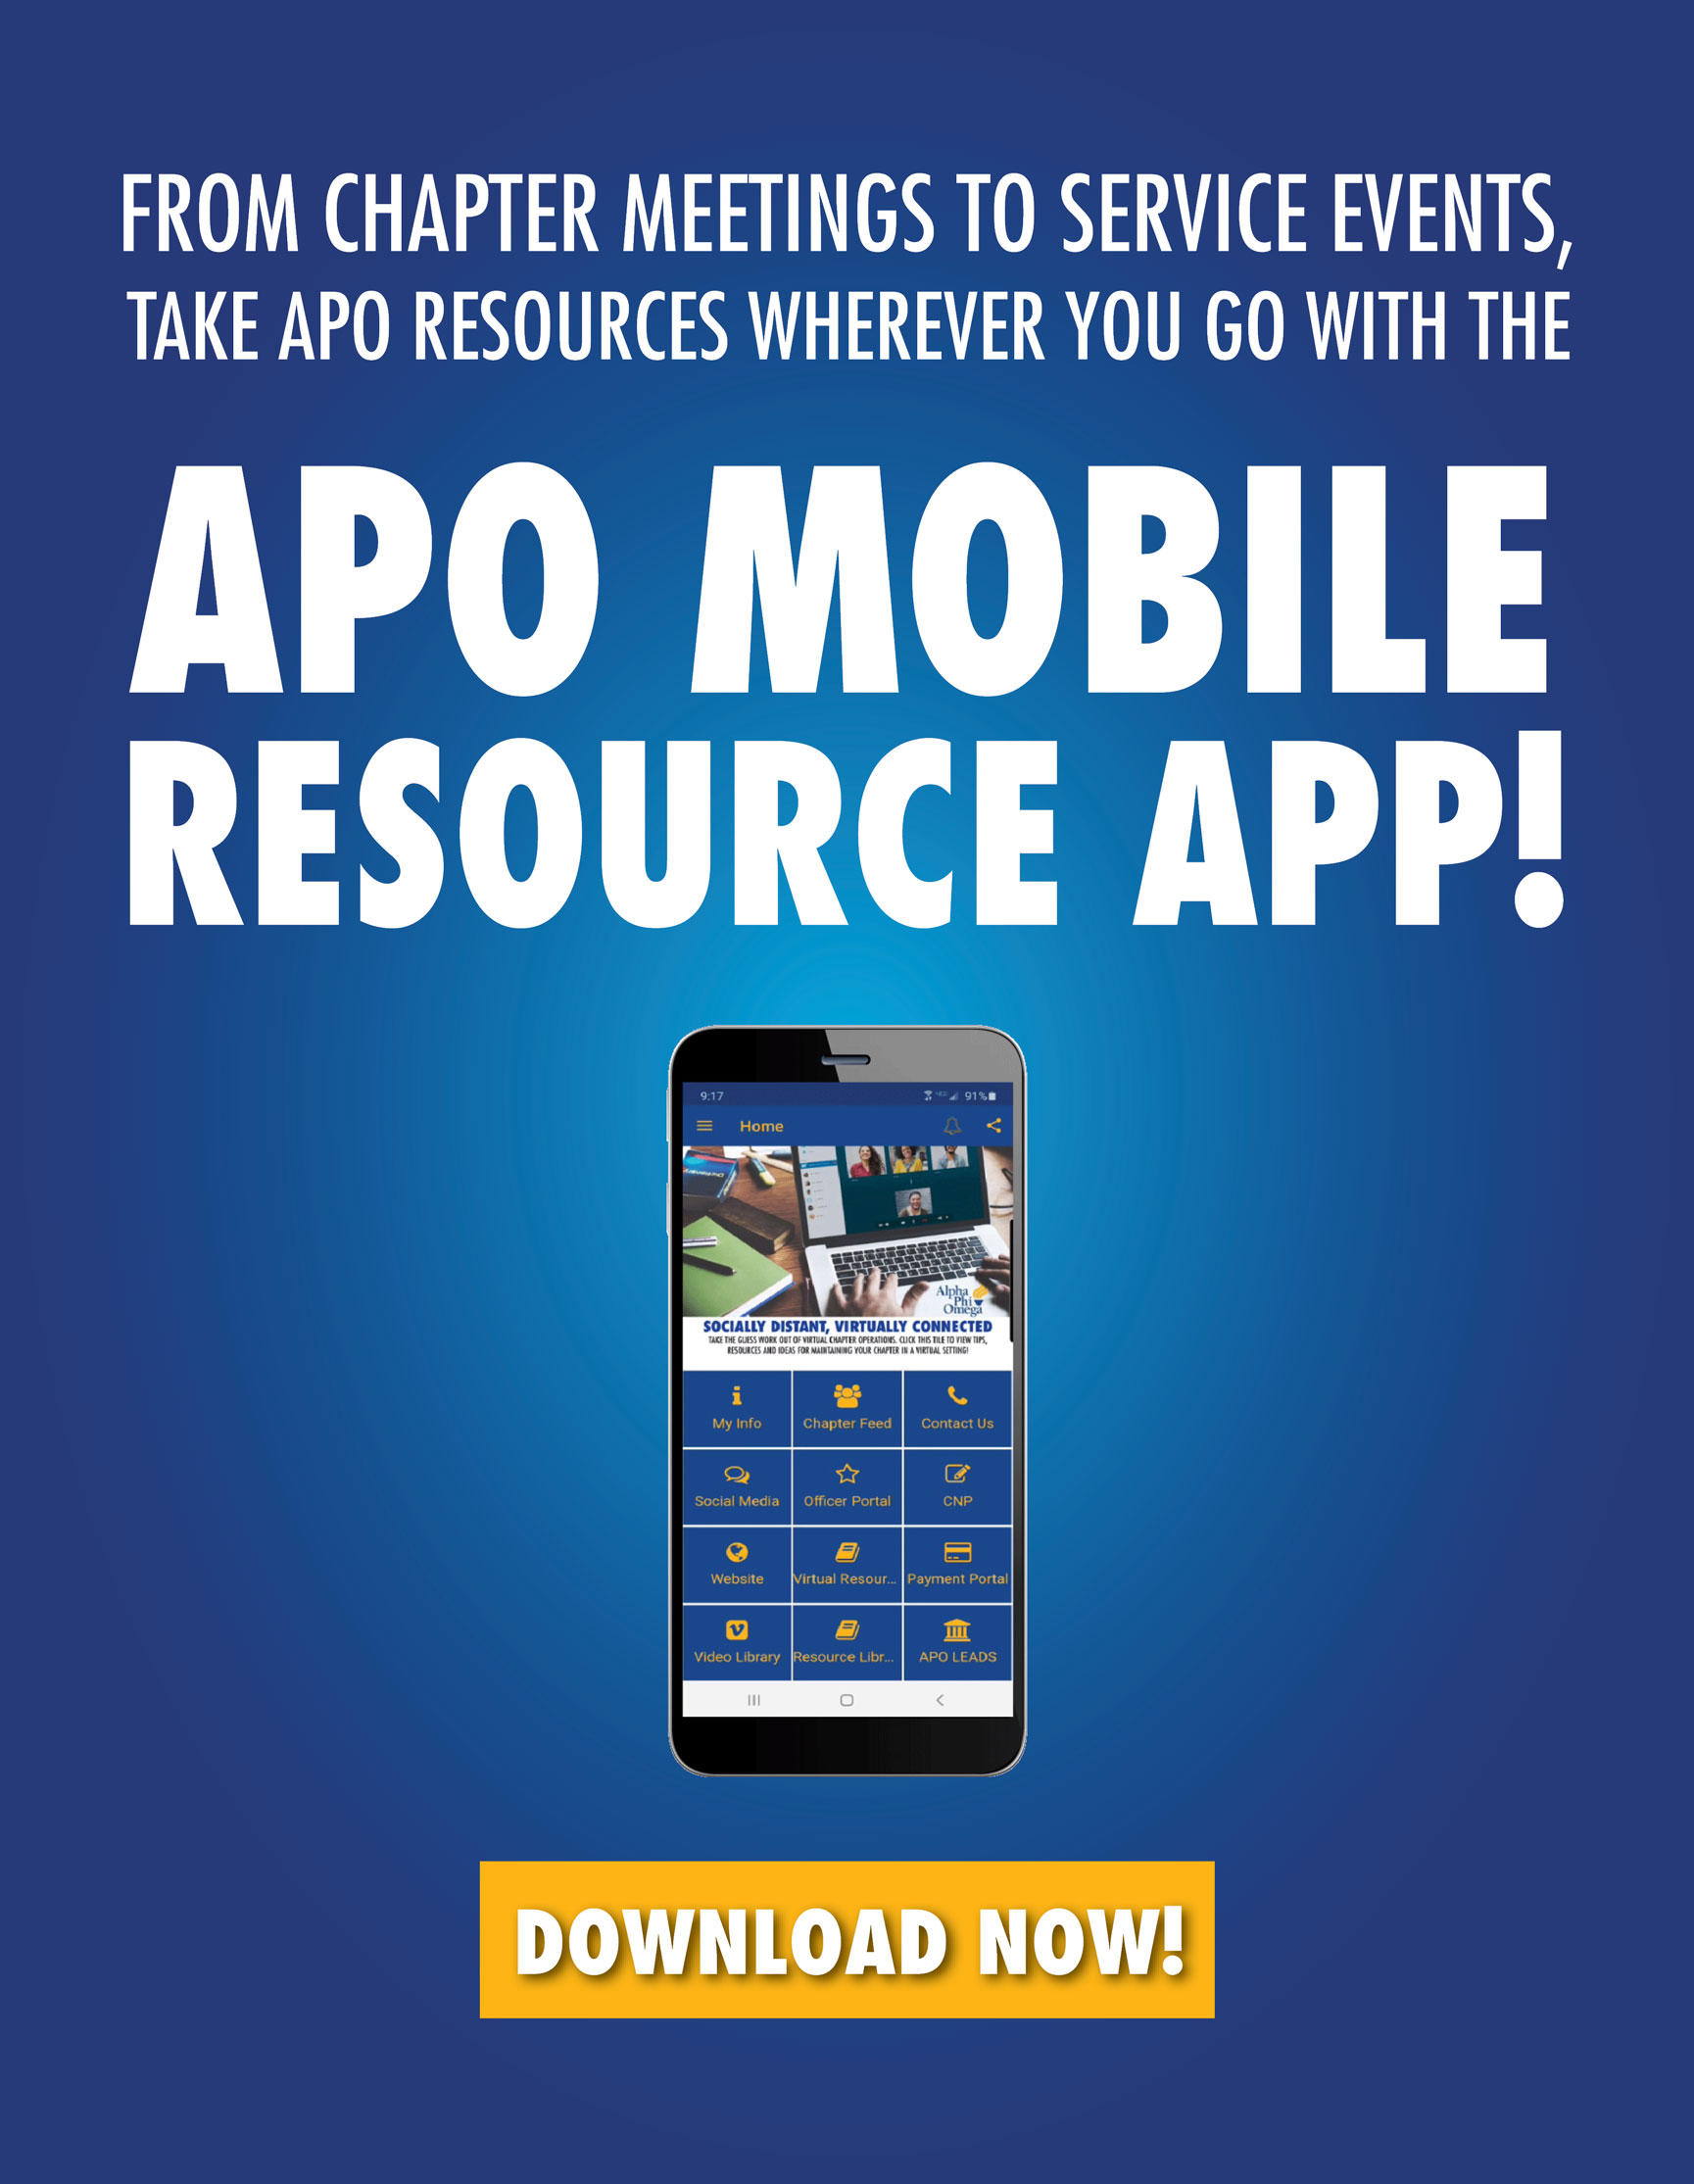 Download the APO Mobile Resource App here